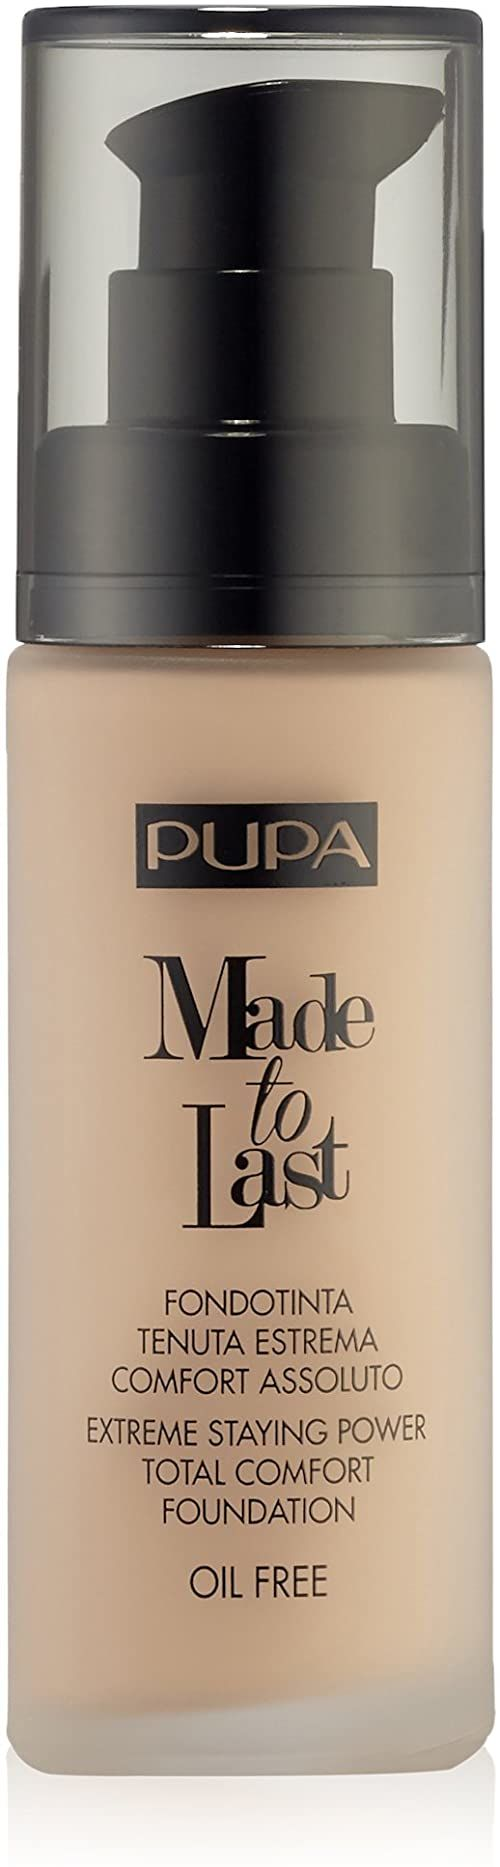 Pupa Made To Last Foundation 030 Natural Beige